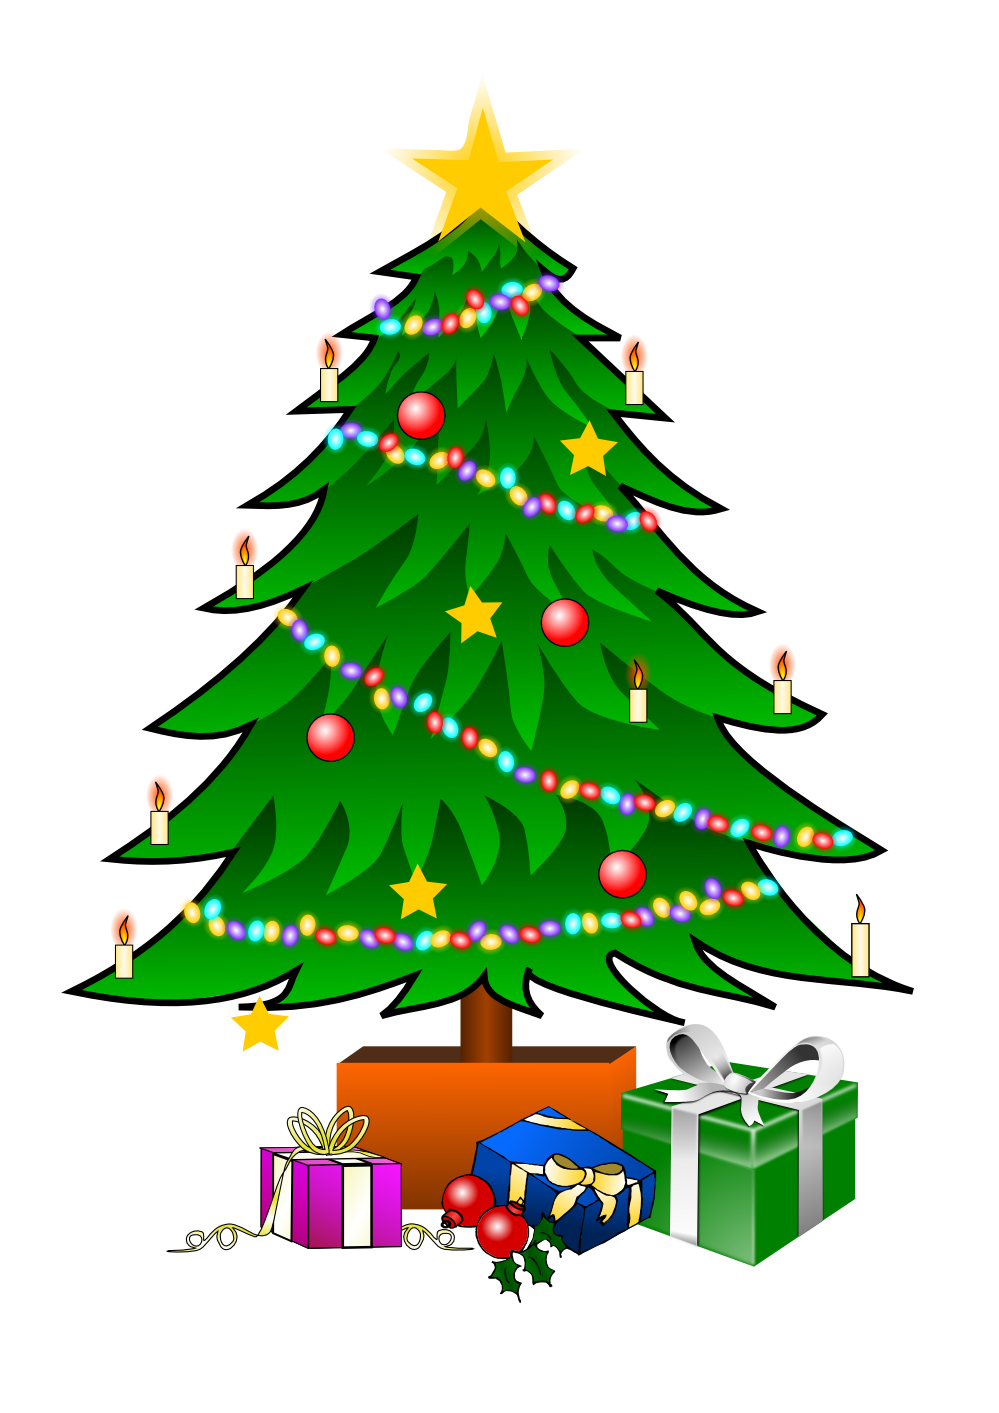 Clipart christmas tree images clip art freeuse download This nice Christmas tree with presents clip art can be used for ... clip art freeuse download